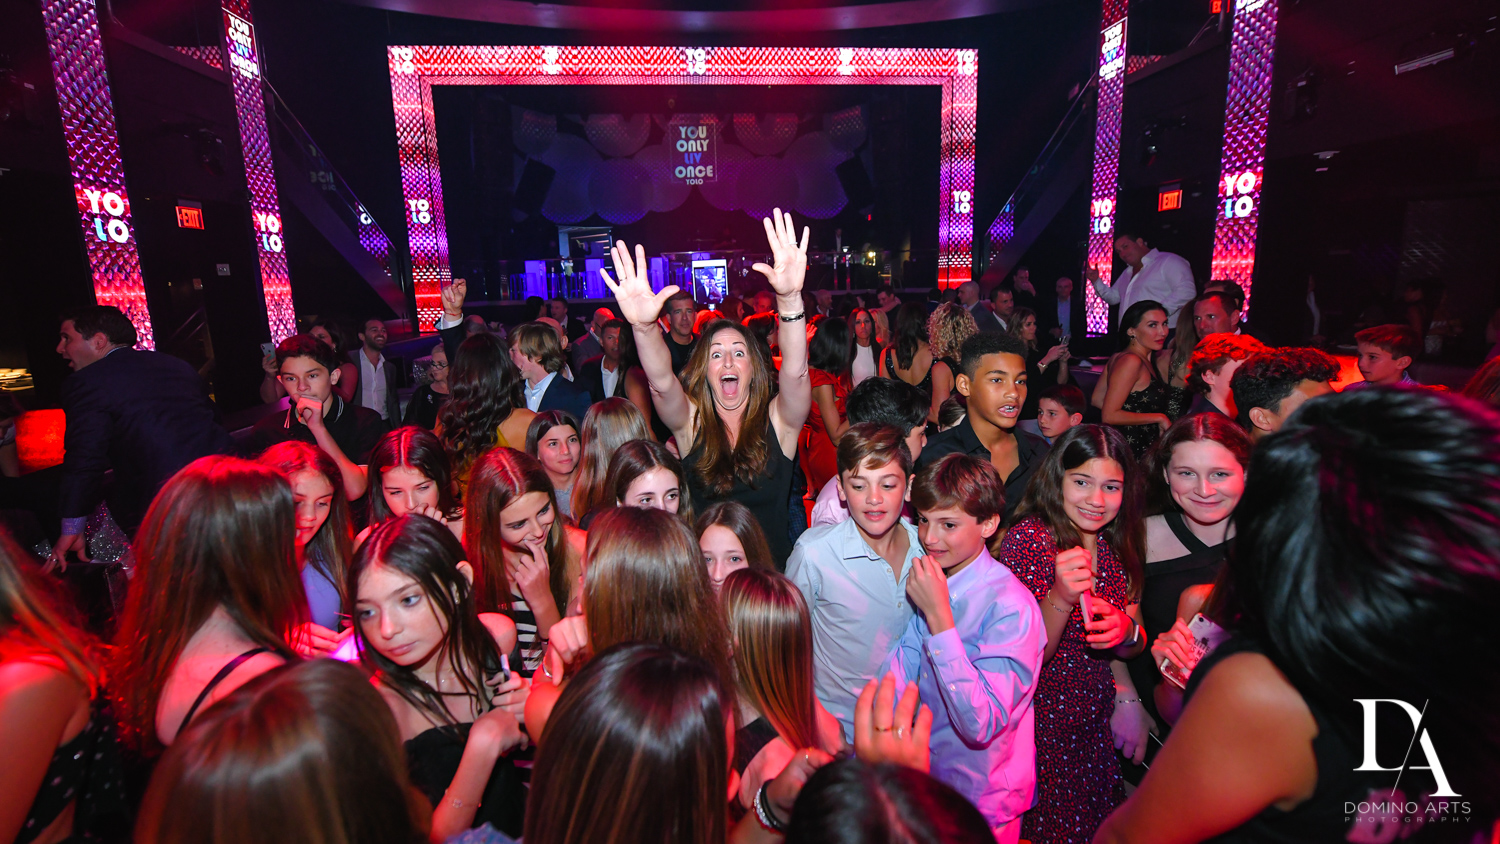 party pics at Nightclub Bat Mitzvah at LIV in Fontainebleau Miami by Domino Arts Photography